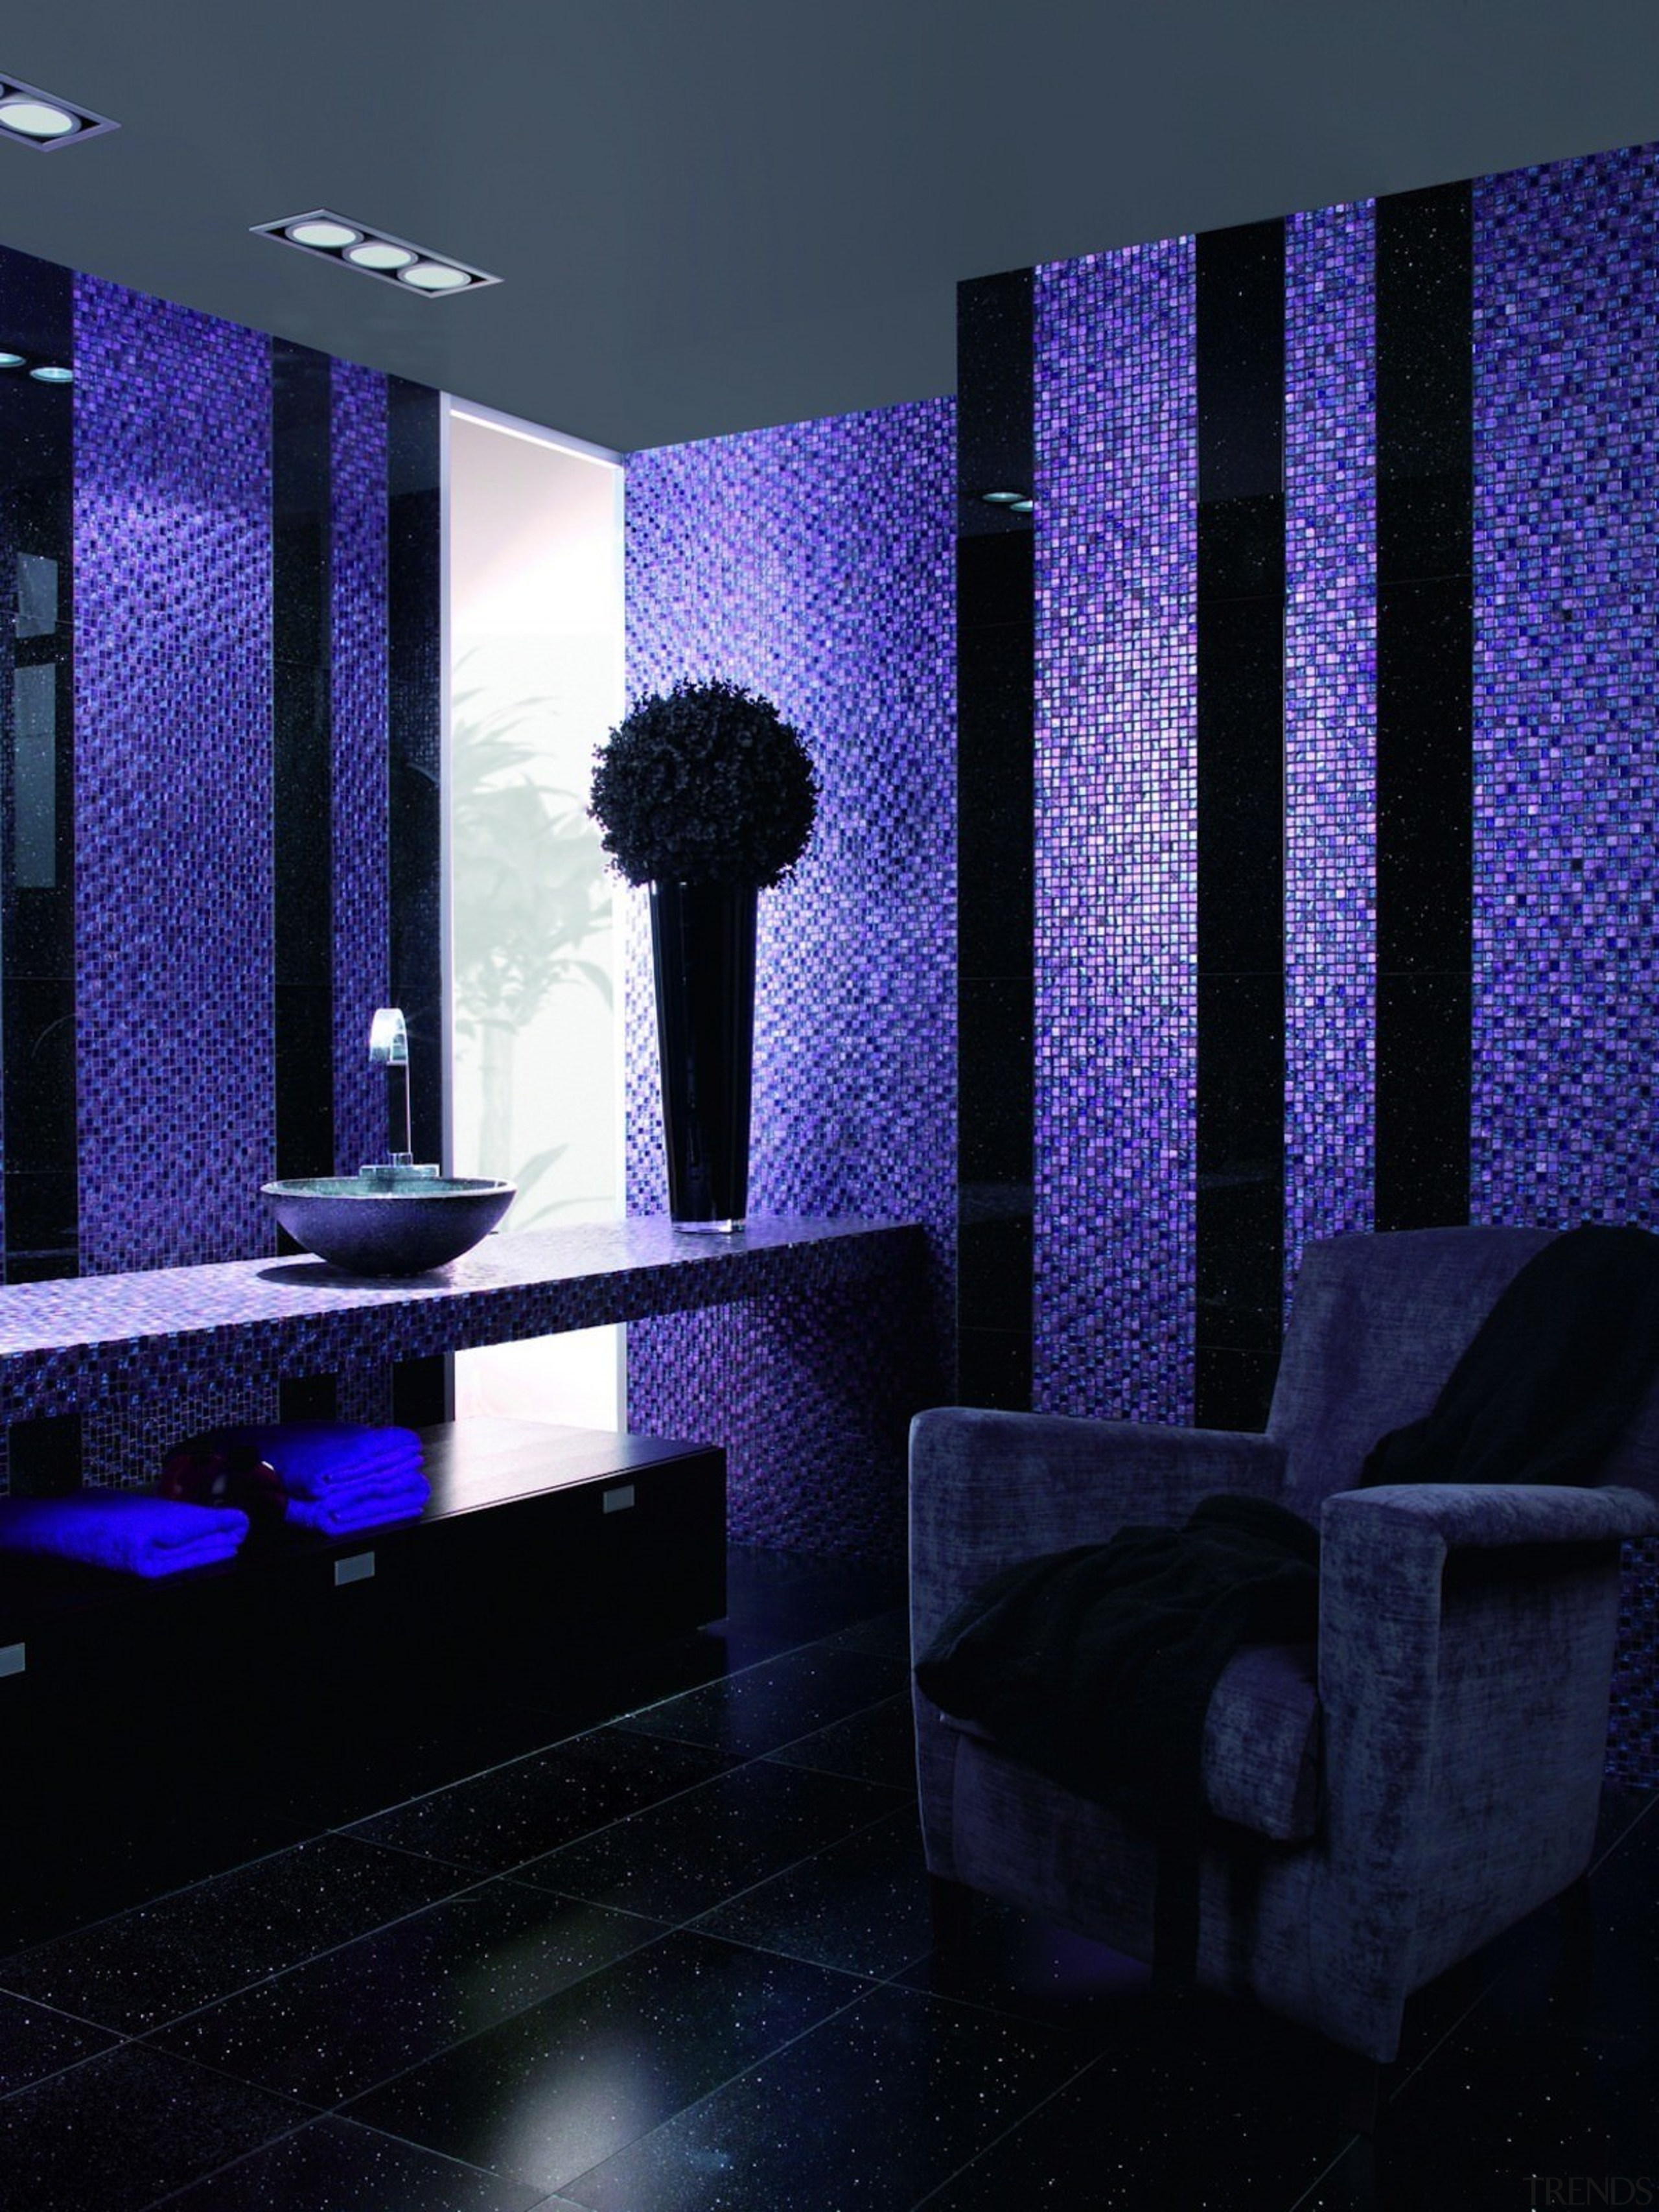 The mosaic tile's creative potential is unlimited architecture, blue, ceiling, daylighting, interior design, light, lighting, purple, room, wall, black, blue